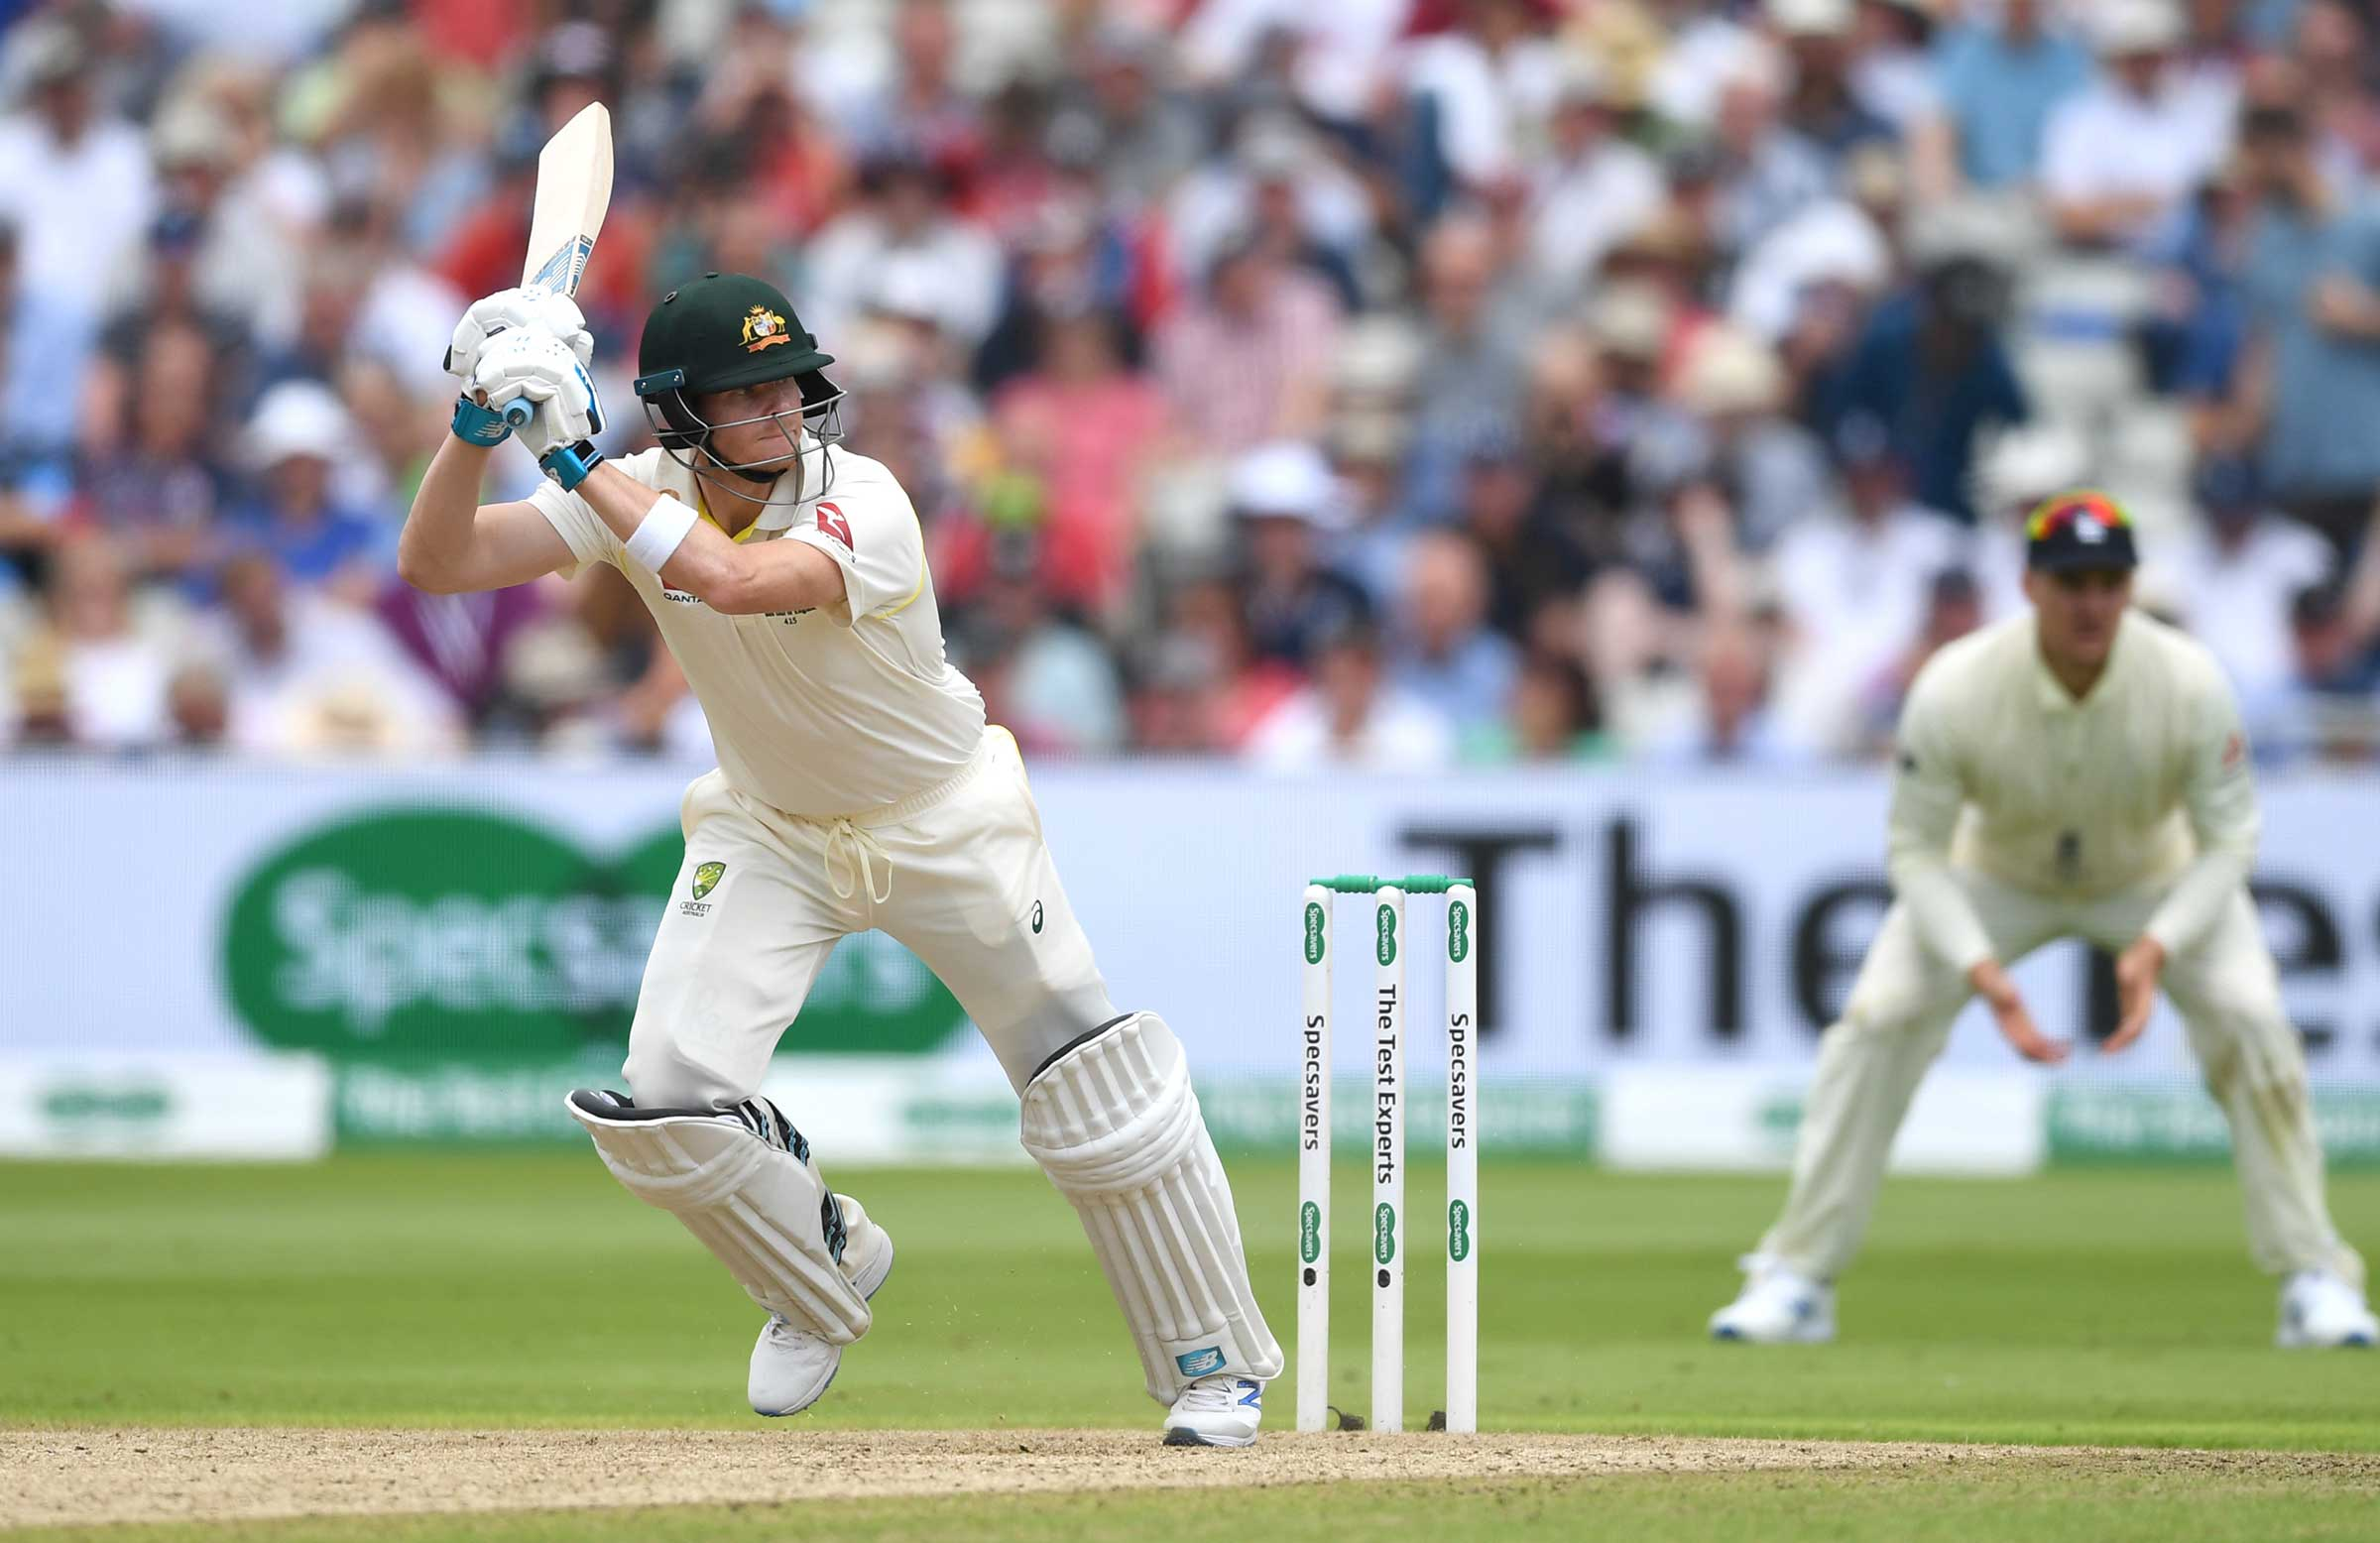 Smith hit 16 fours and two sixes // Getty